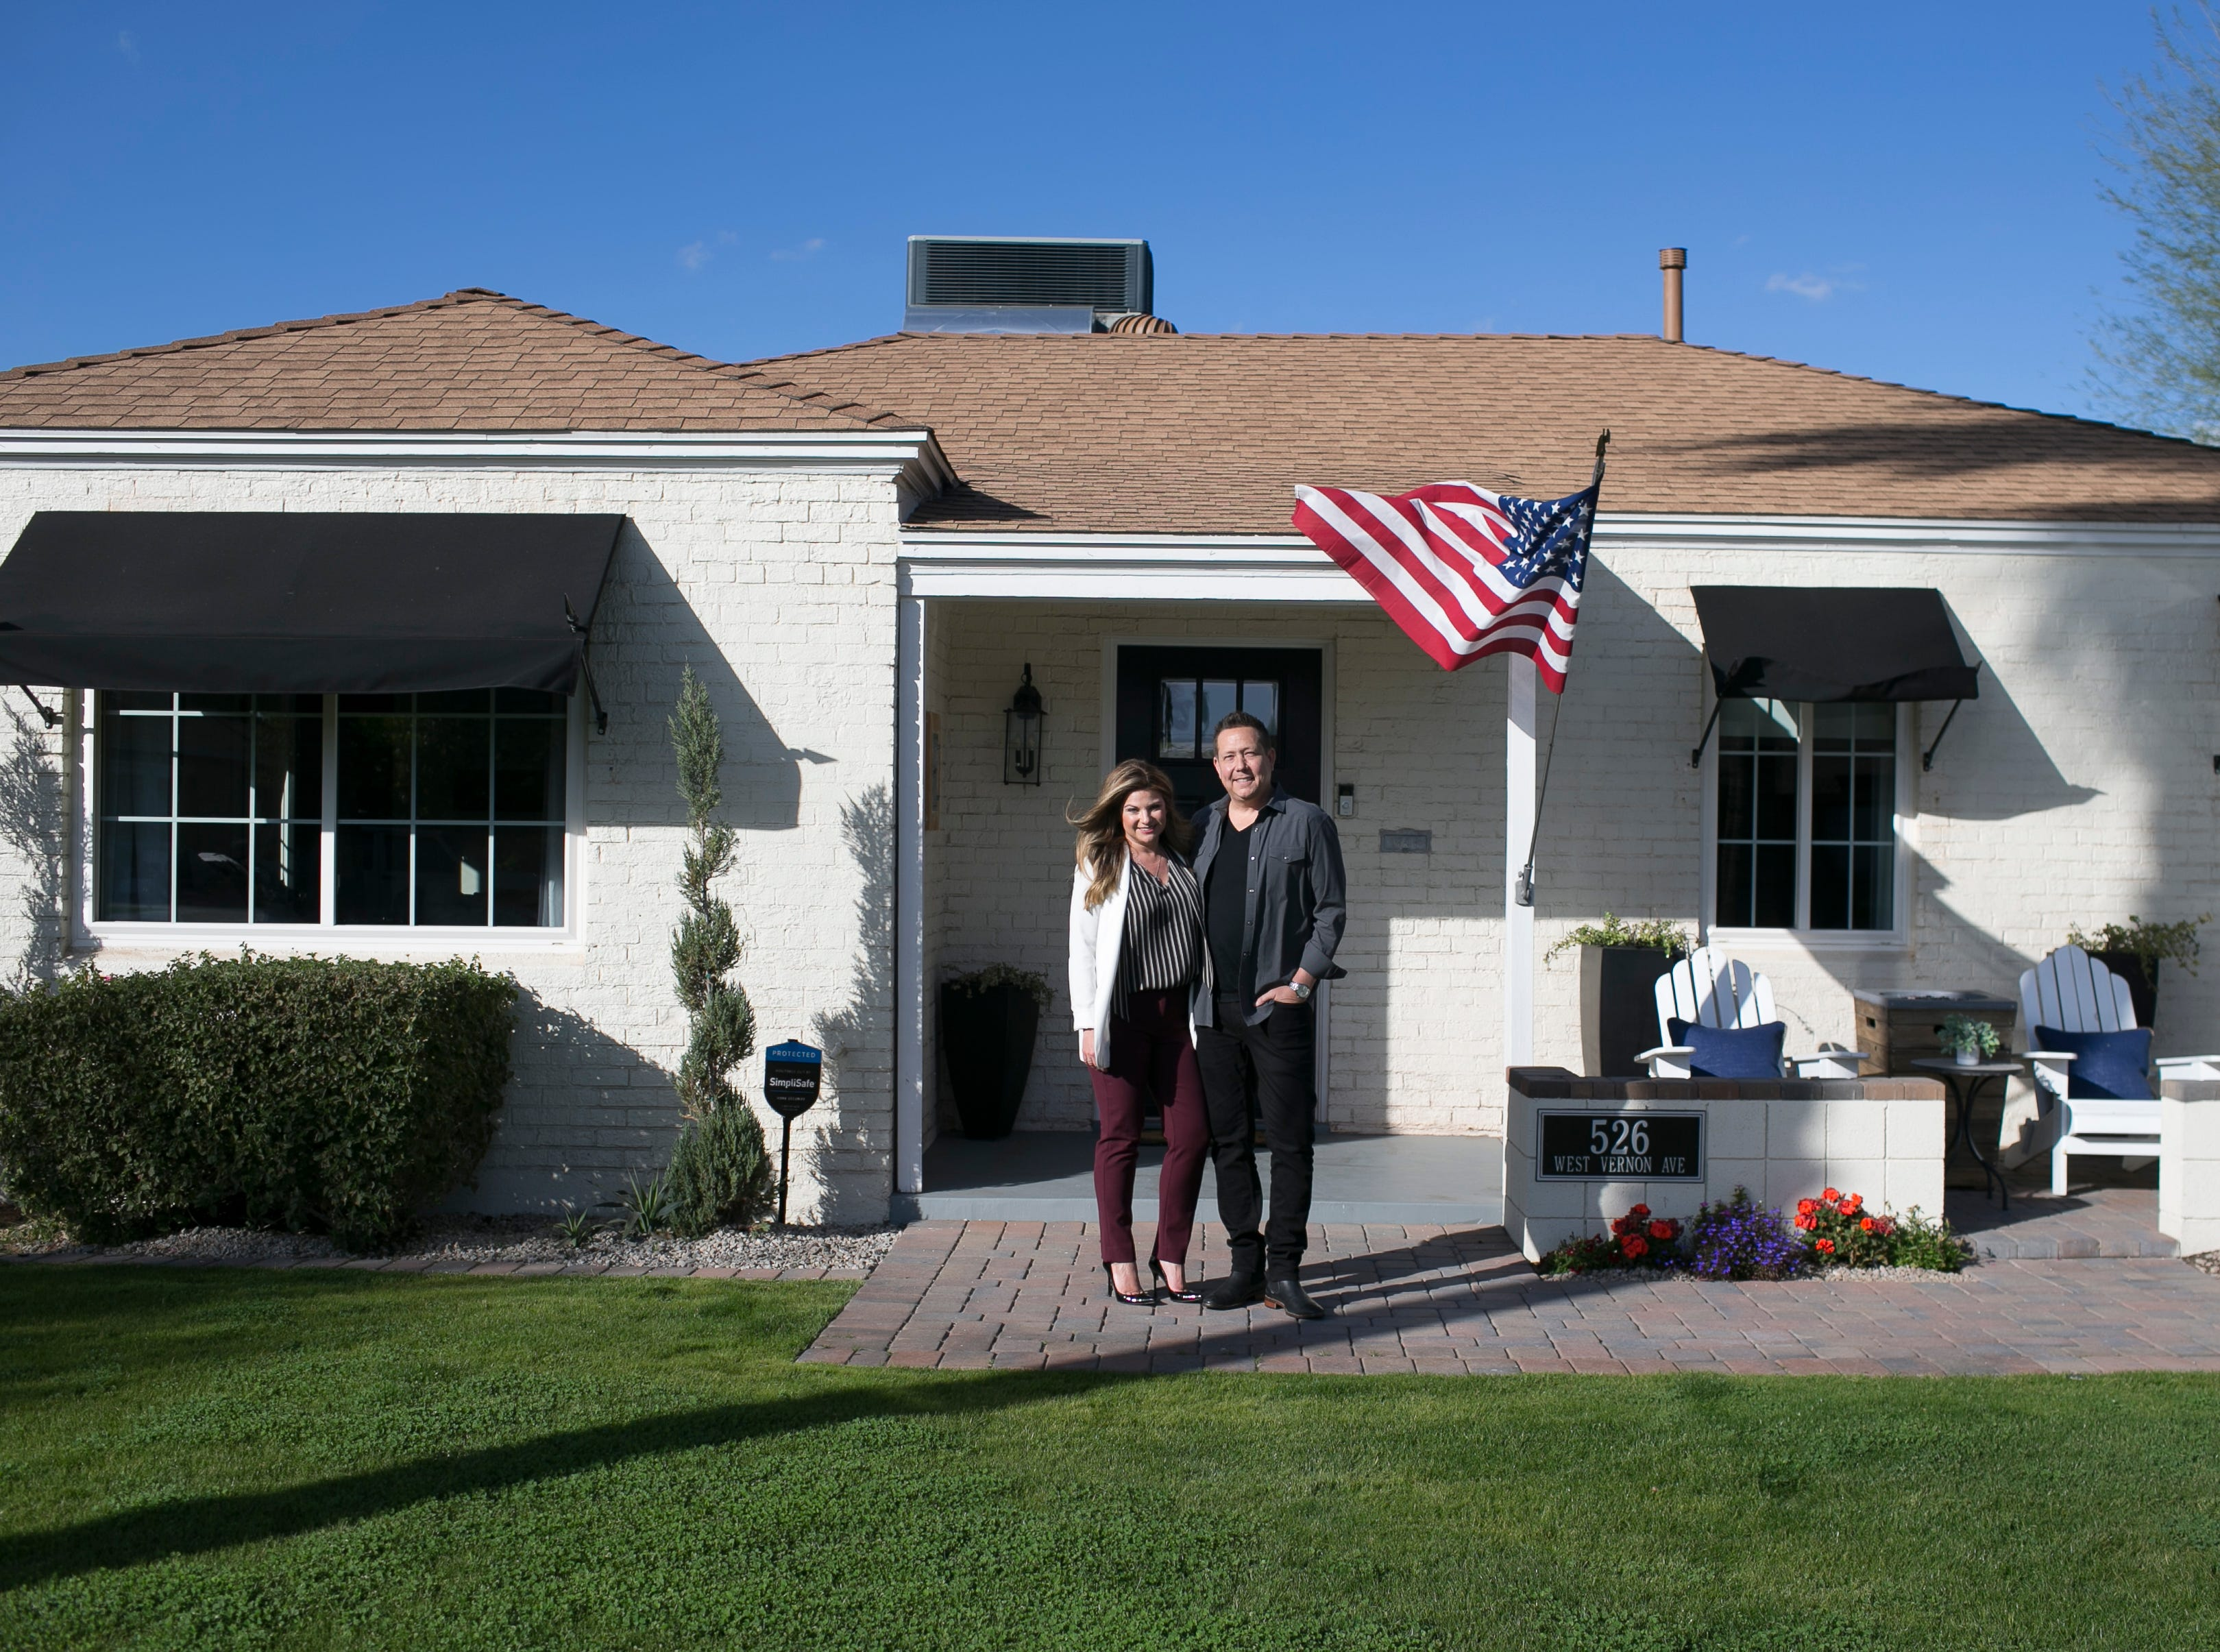 Kelly and Chris  Nottleman stand in front of their home Feb. 2, 2019, in Phoenix. The Nottlemans renovated their home and opened it to the public to be a part of the historic Willo district home tour.